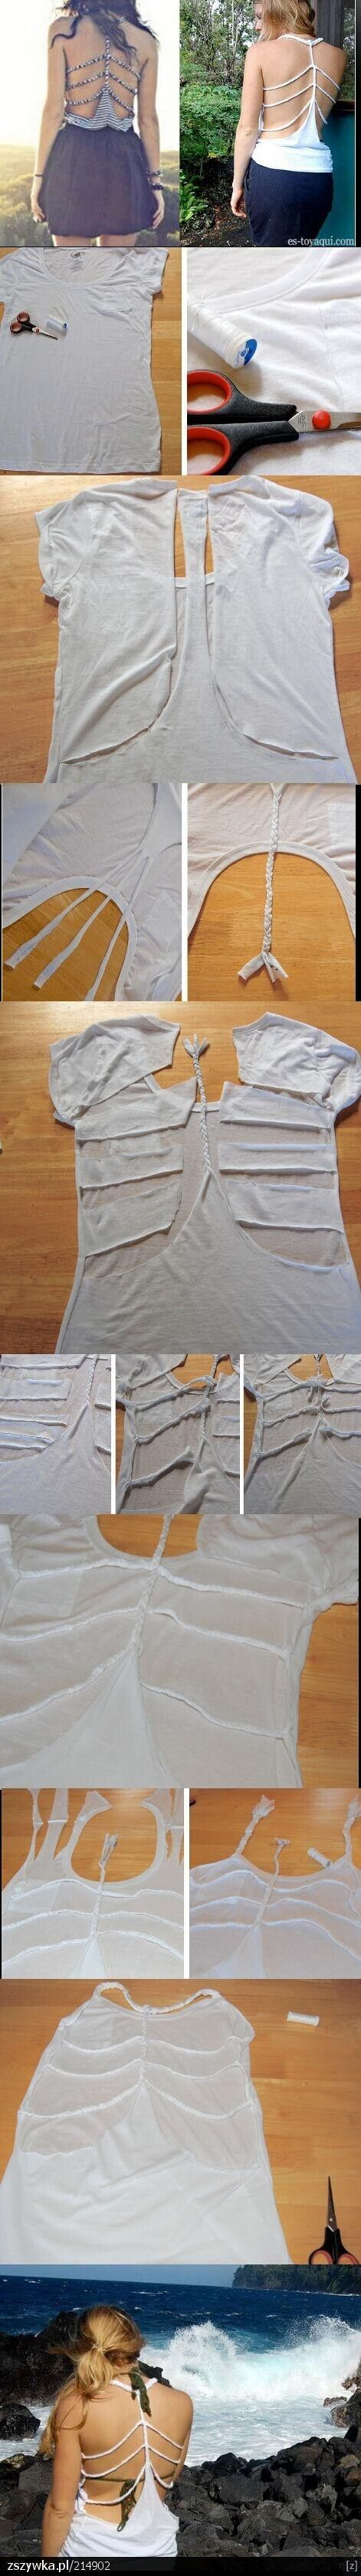 Best 25 sew tshirt ideas on pinterest diy t shirt t shirt 40 simple no sew diy clothing hacks designs and ideas solutioingenieria Gallery